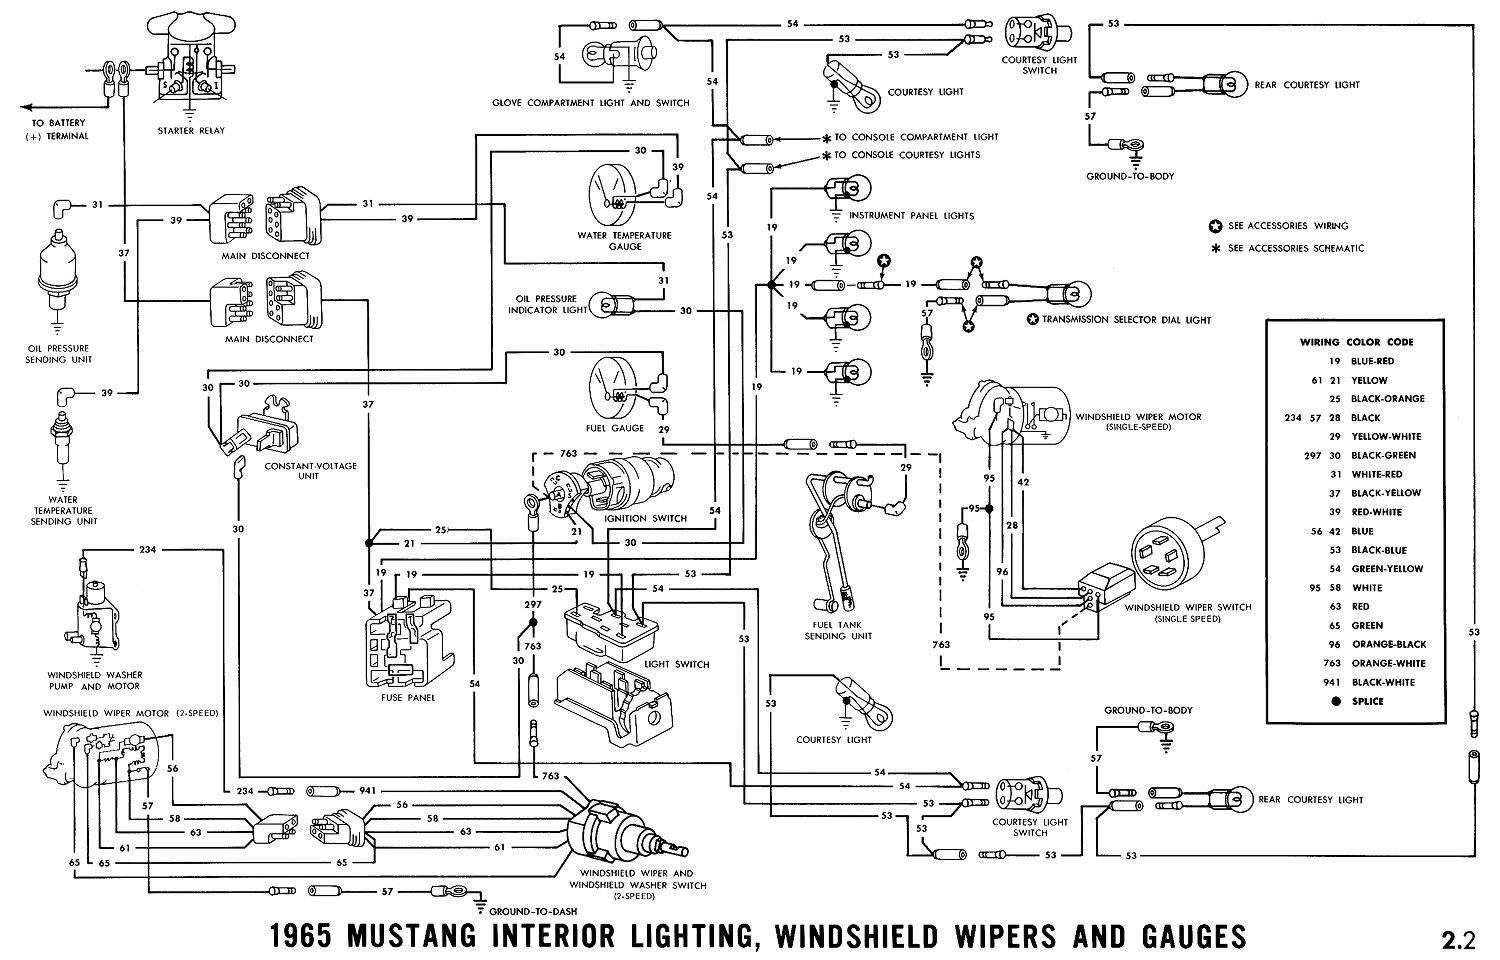 DIAGRAM] 1969 Mustang Grande Wiring Diagram FULL Version HD Quality Wiring  Diagram - SWITCHWIRINGD.BRAMITA.IT  bramita.it